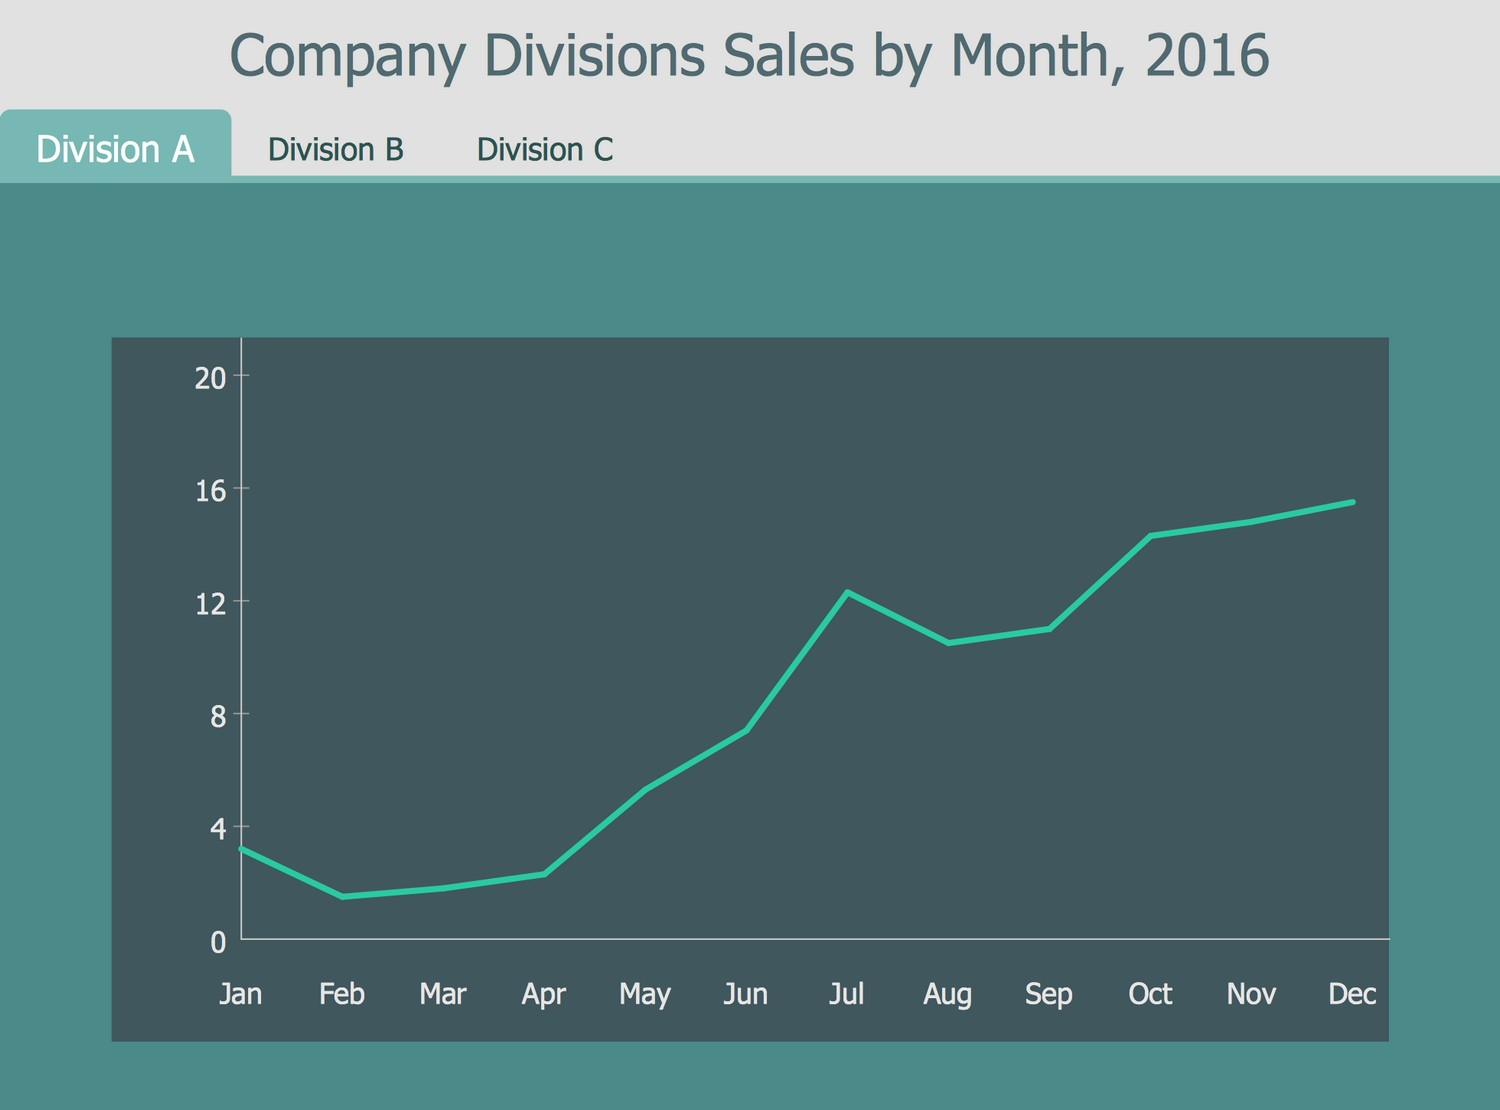 Business Intelligence Dashboard - Company Divisions Sales by Month, 2016